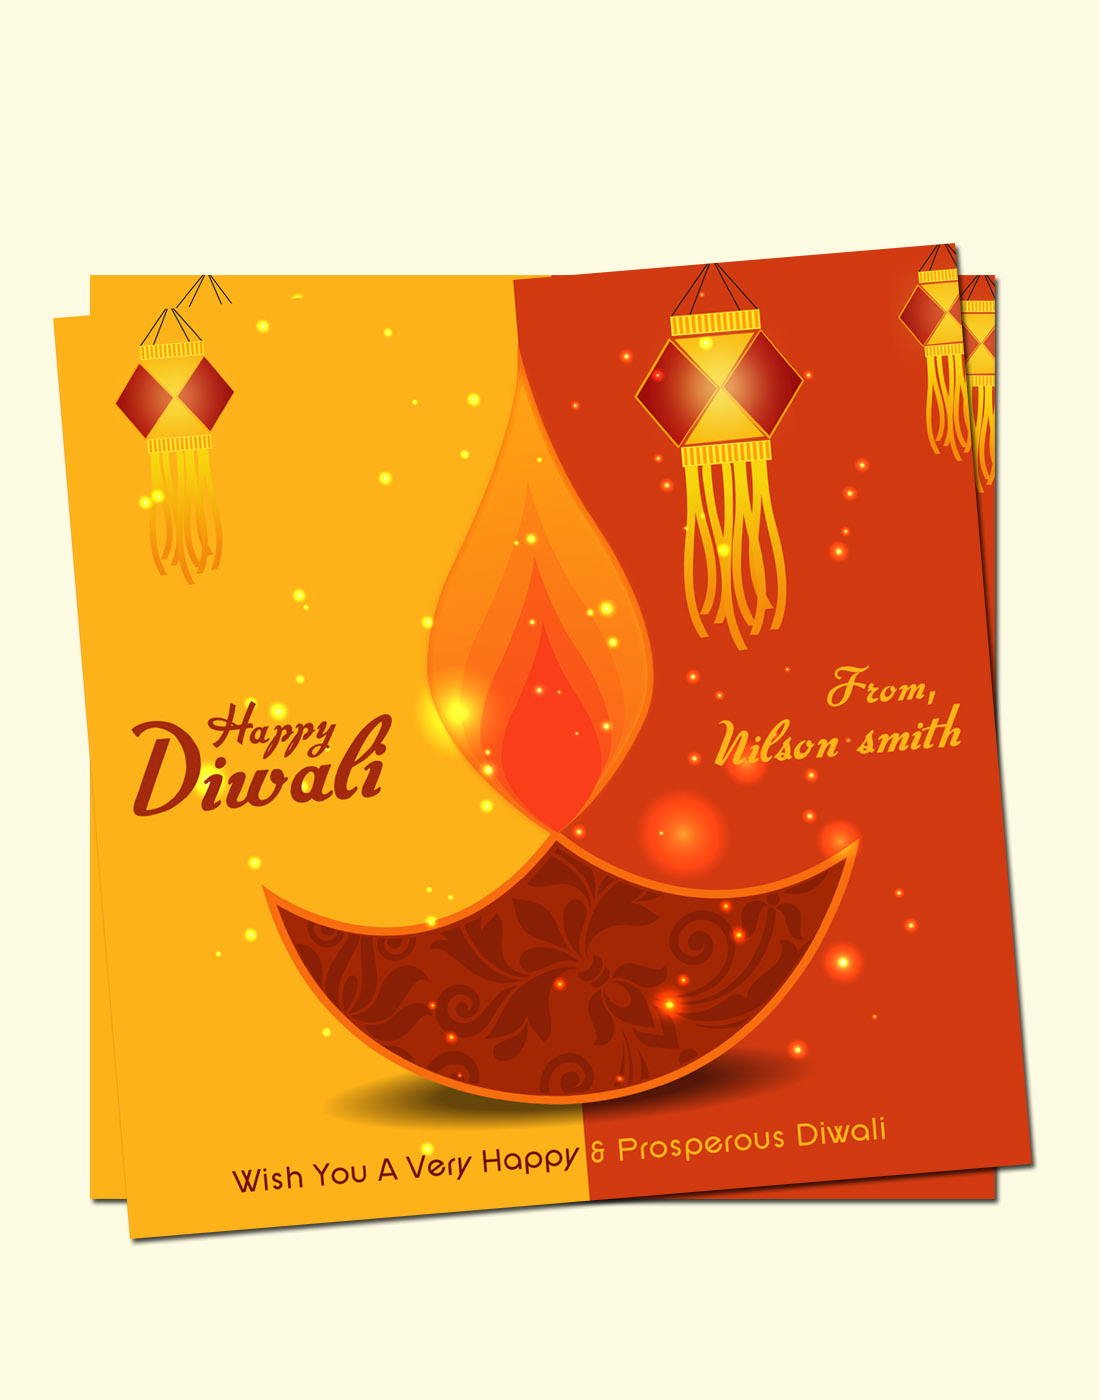 Diwali Party Invite Images Wedding And Party Invitation – Diwali Party Invitations